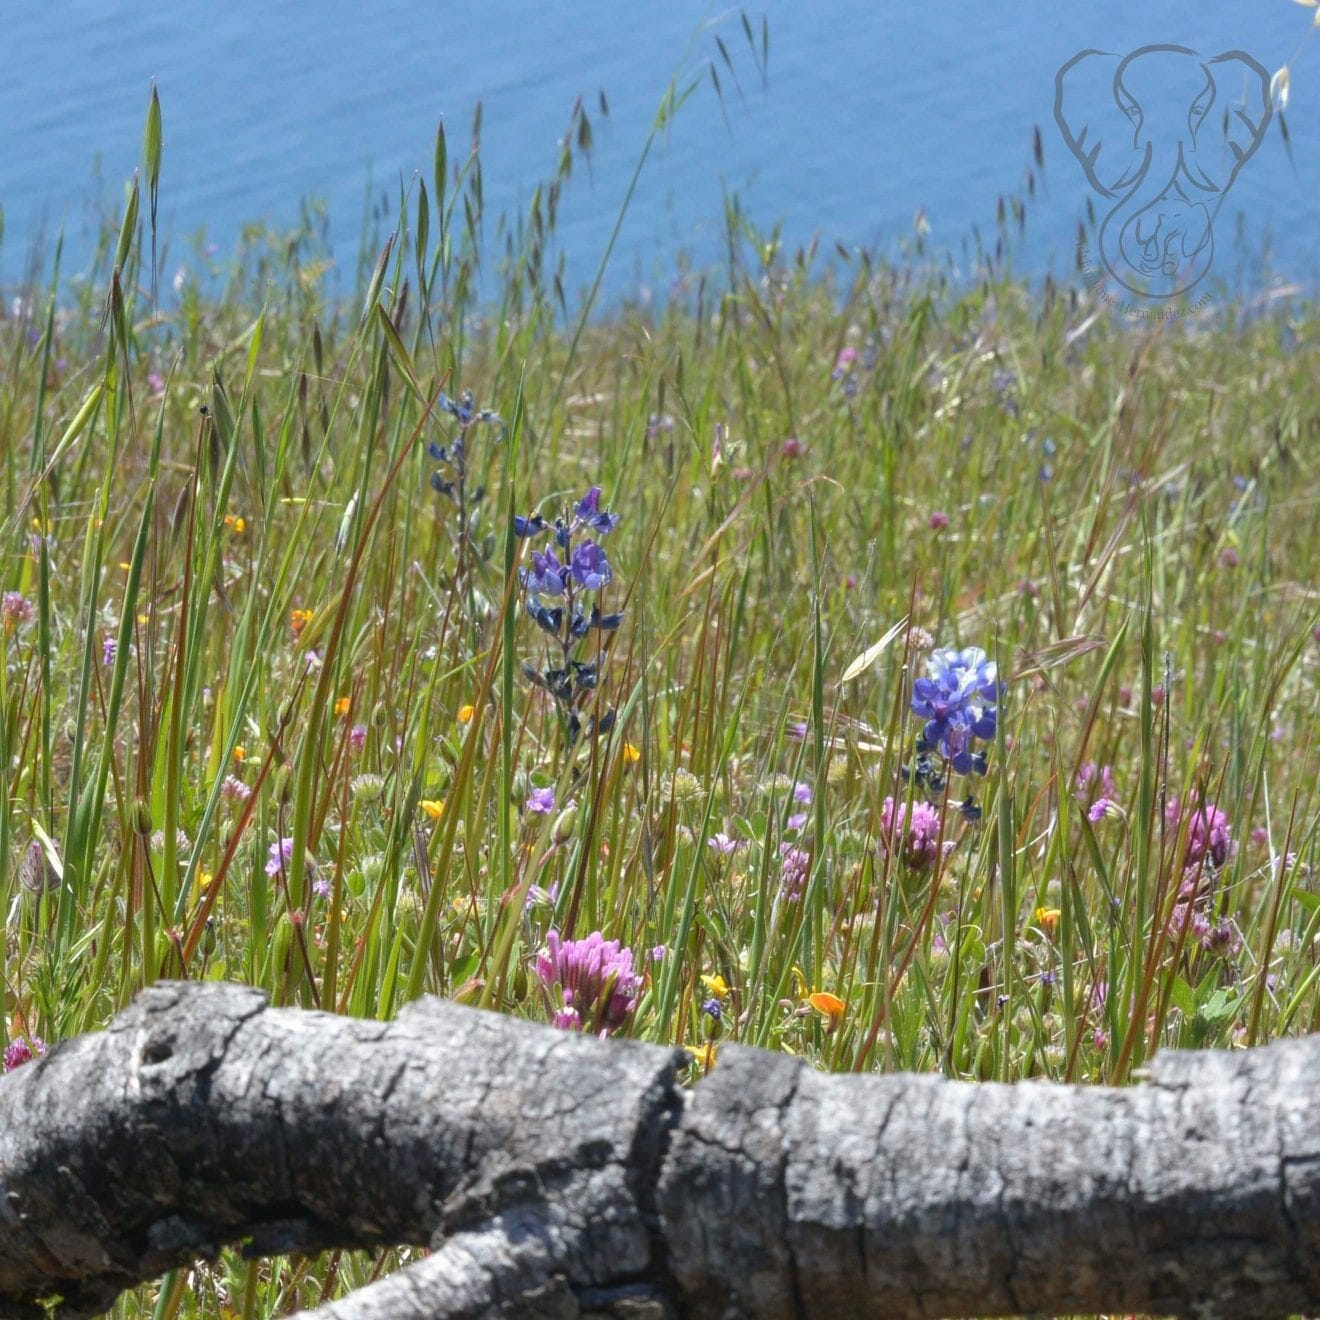 Wildflowers in Big Sur, California (Miranda Hernandez)